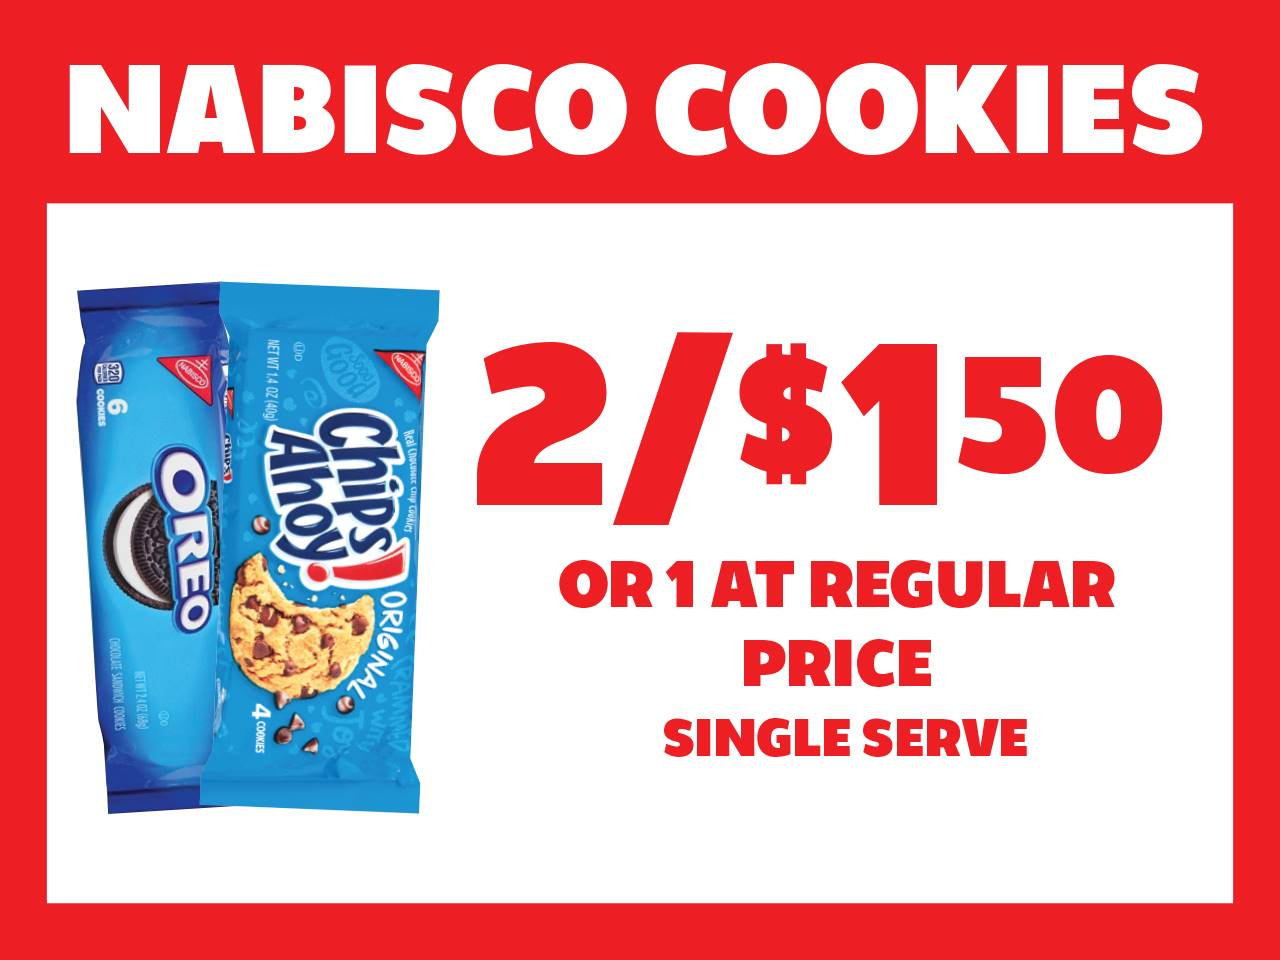 Single Serve Nabisco Cookies 2 for $1.50 or 1 at Reg Price